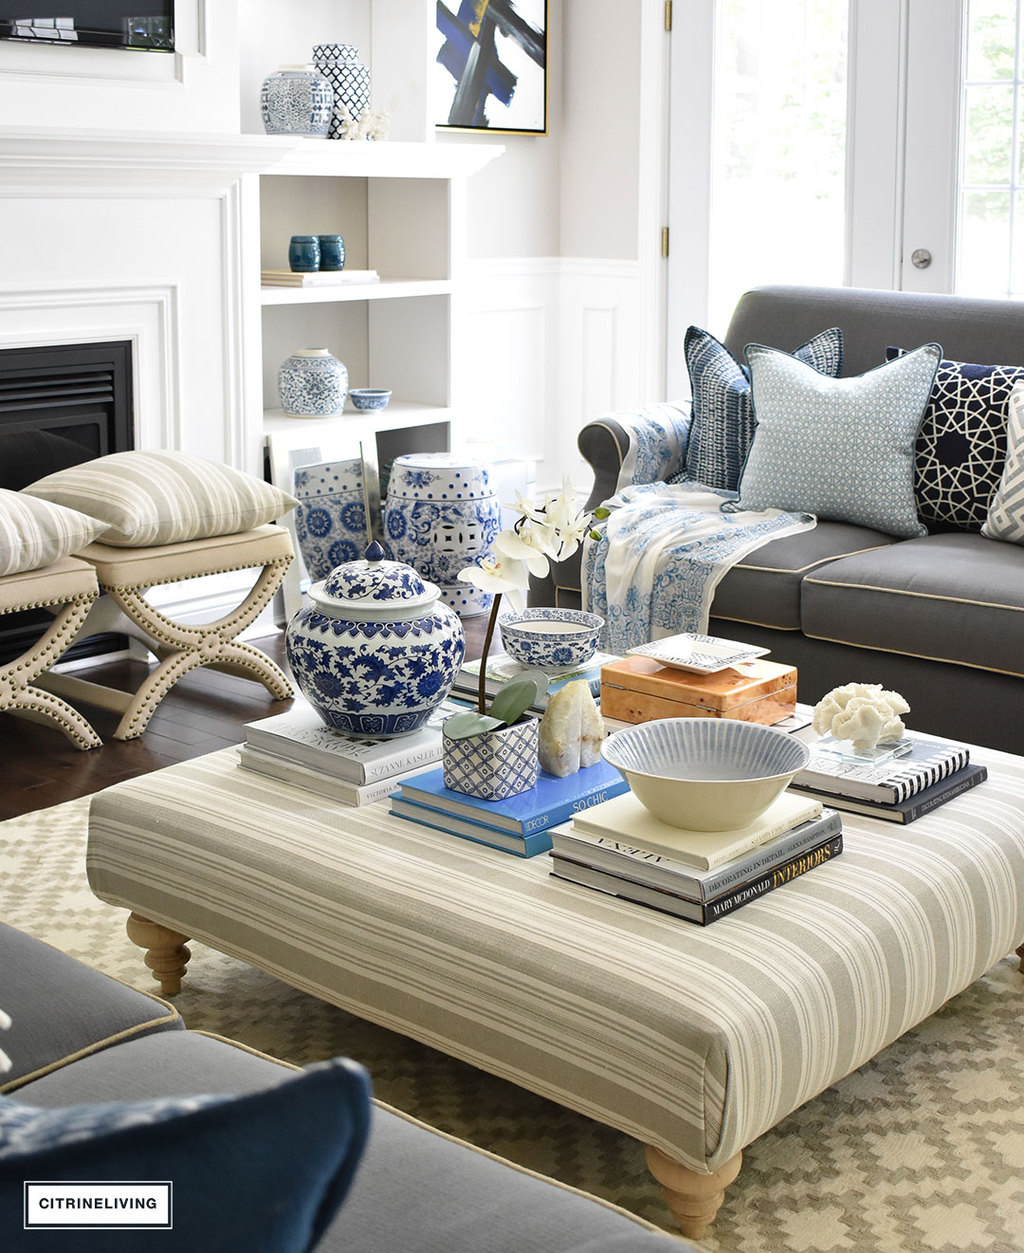 Make A Style Statement On Your Coffee Table With Stacks Of Books Decorative Bo And